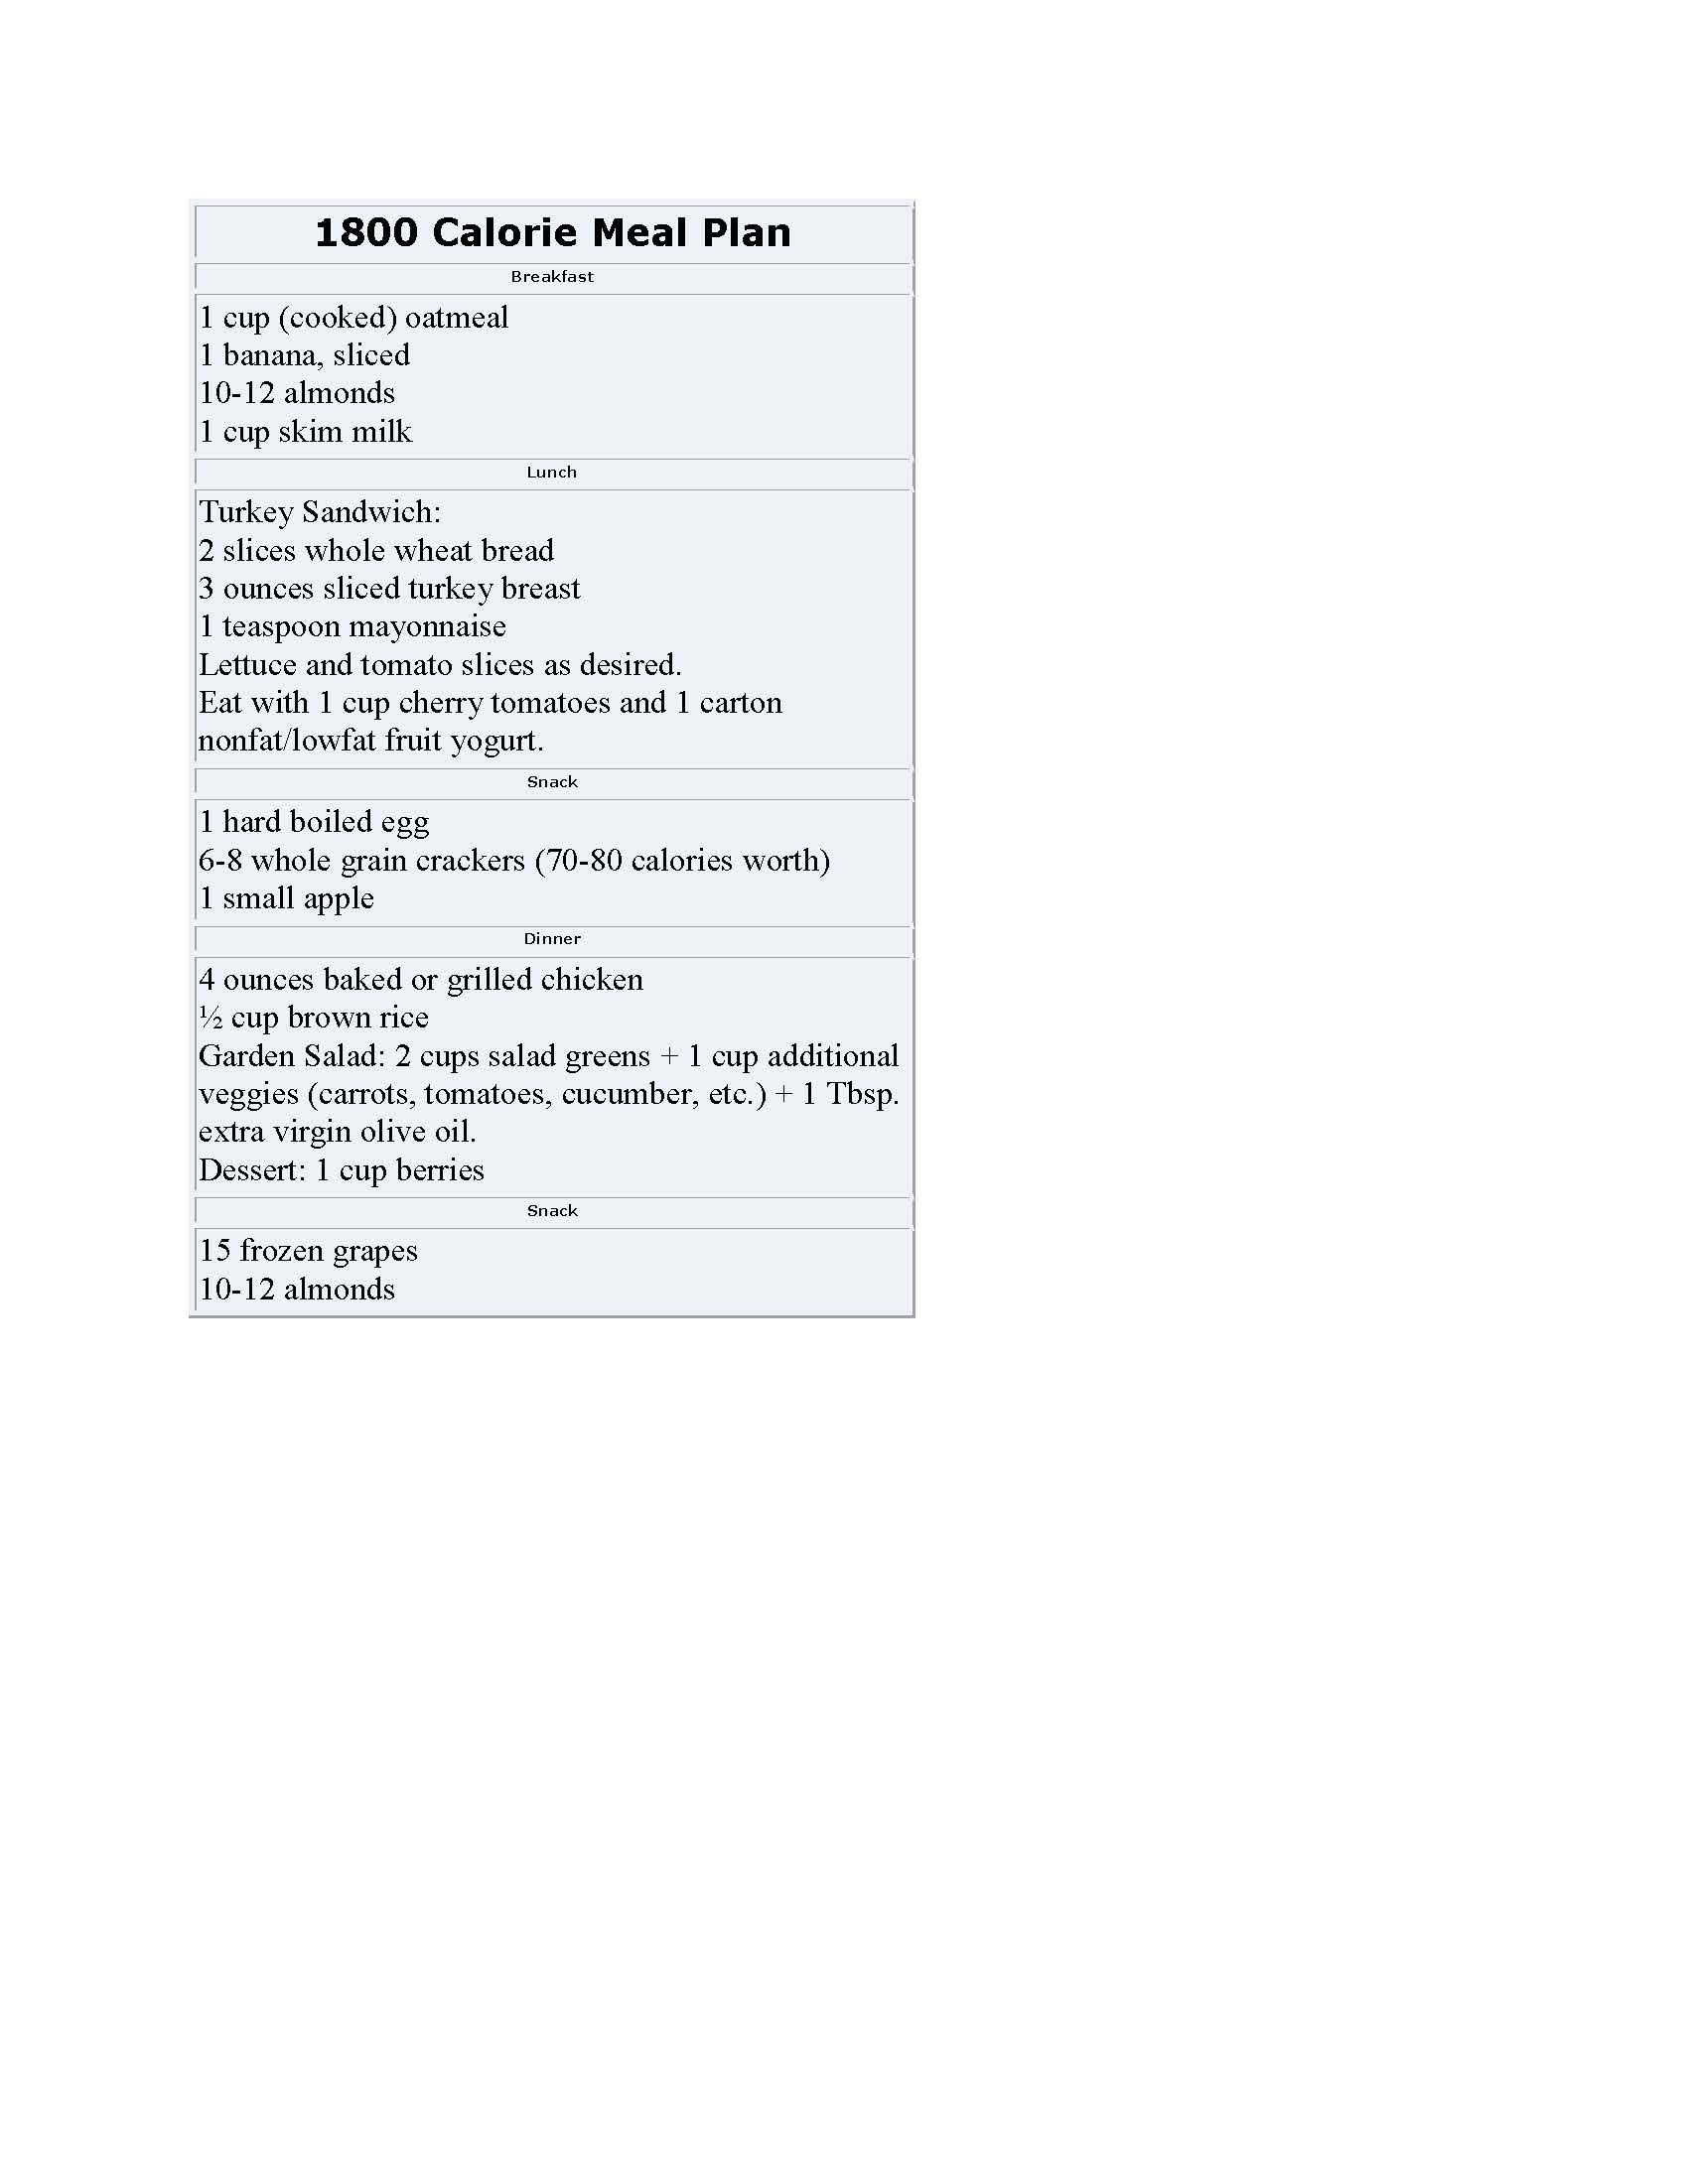 1200 calorie diet meal plan the healthy meal plan series calories